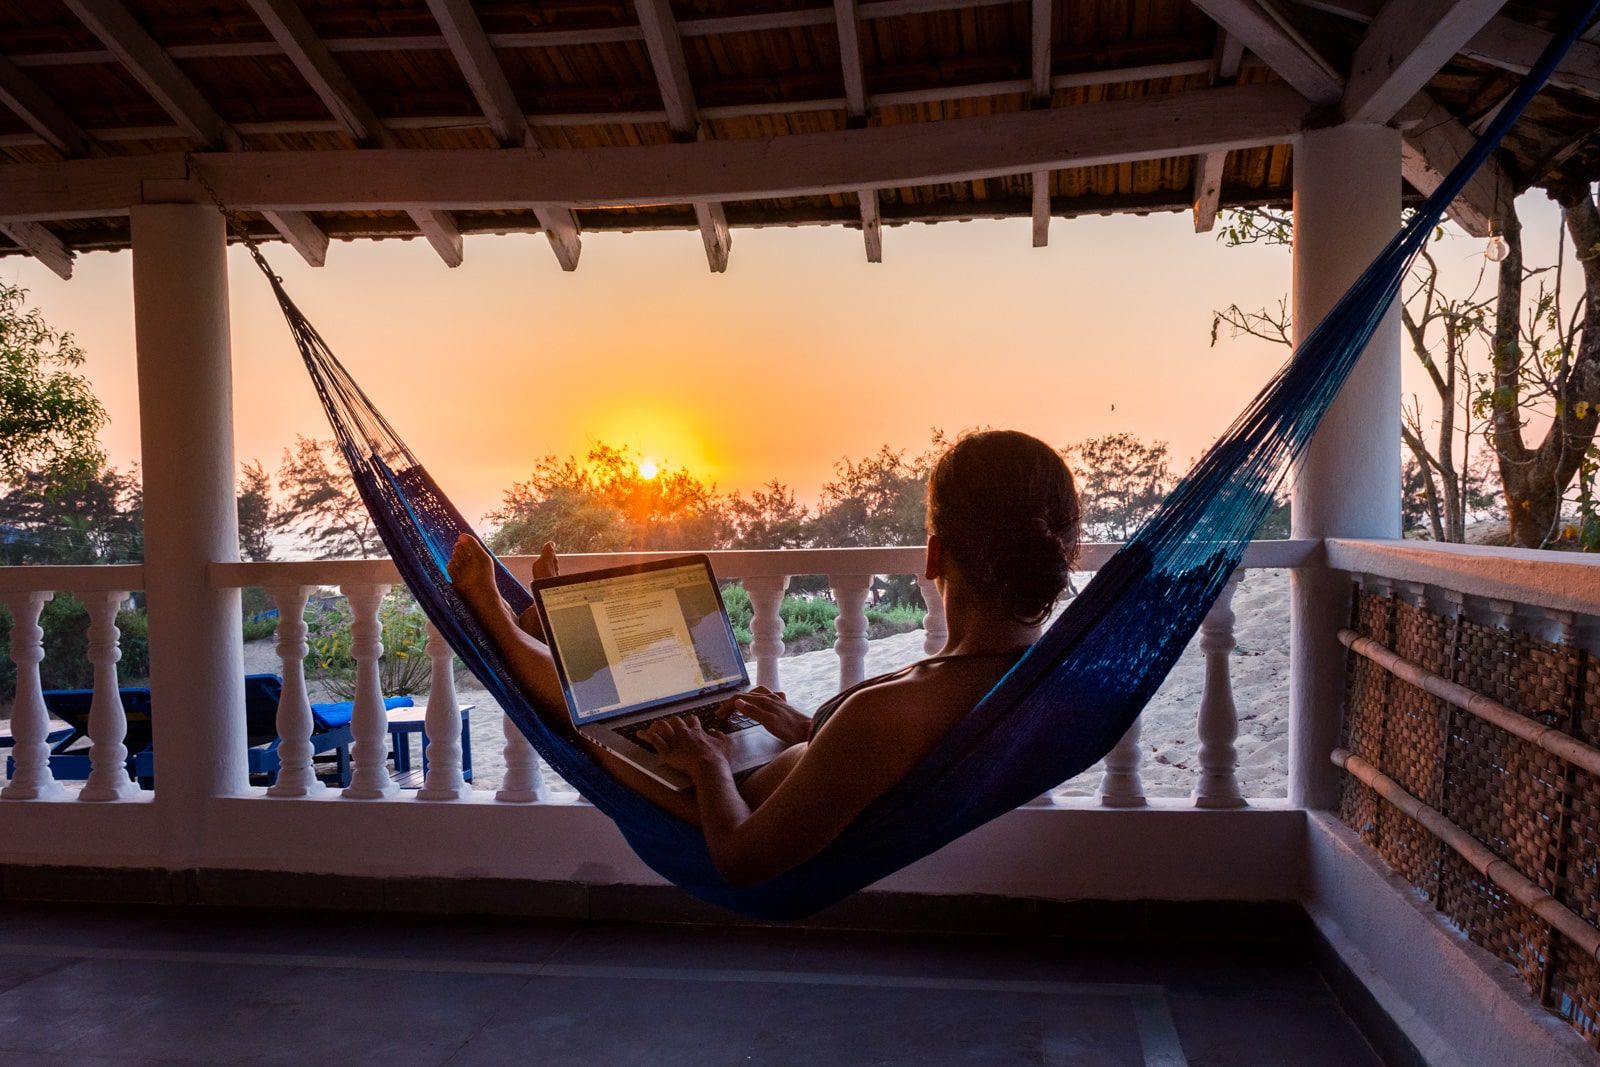 How I afford full-time travel - Working during sunset in Baga, Goa, India - Lost With Purpose travel blog